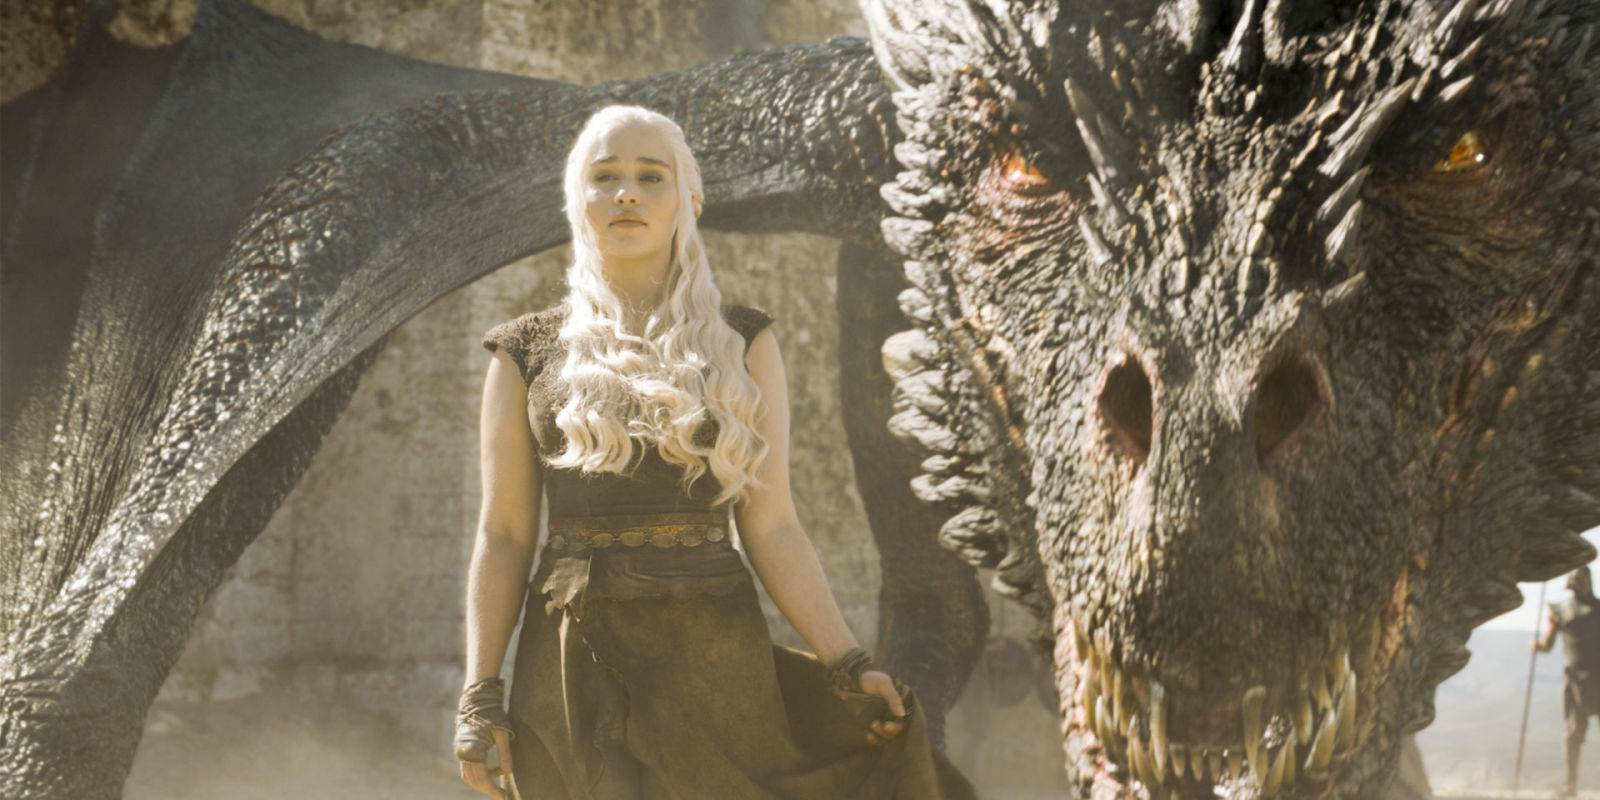 Is a Daenerys vs. Cersei Face-Off Coming in 'Game of Thrones' Season 7?